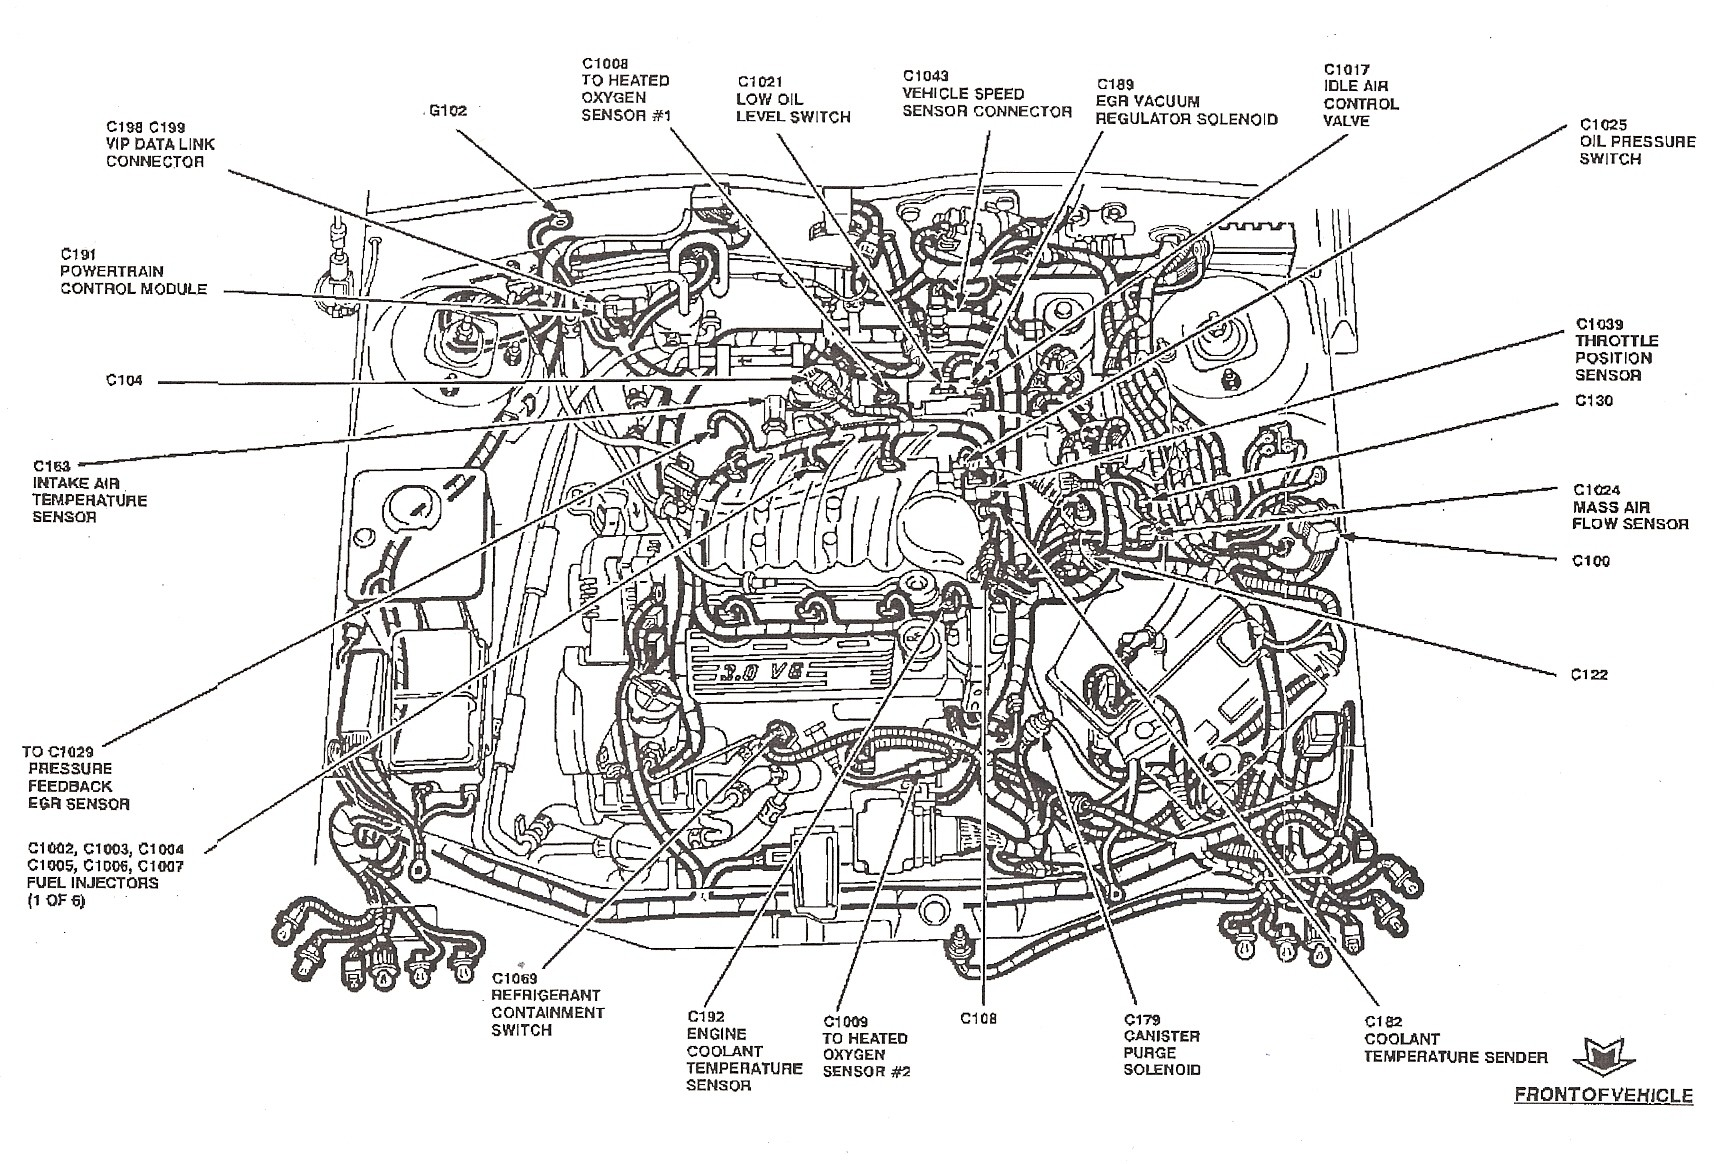 Ford Taurus Heating System Diagram